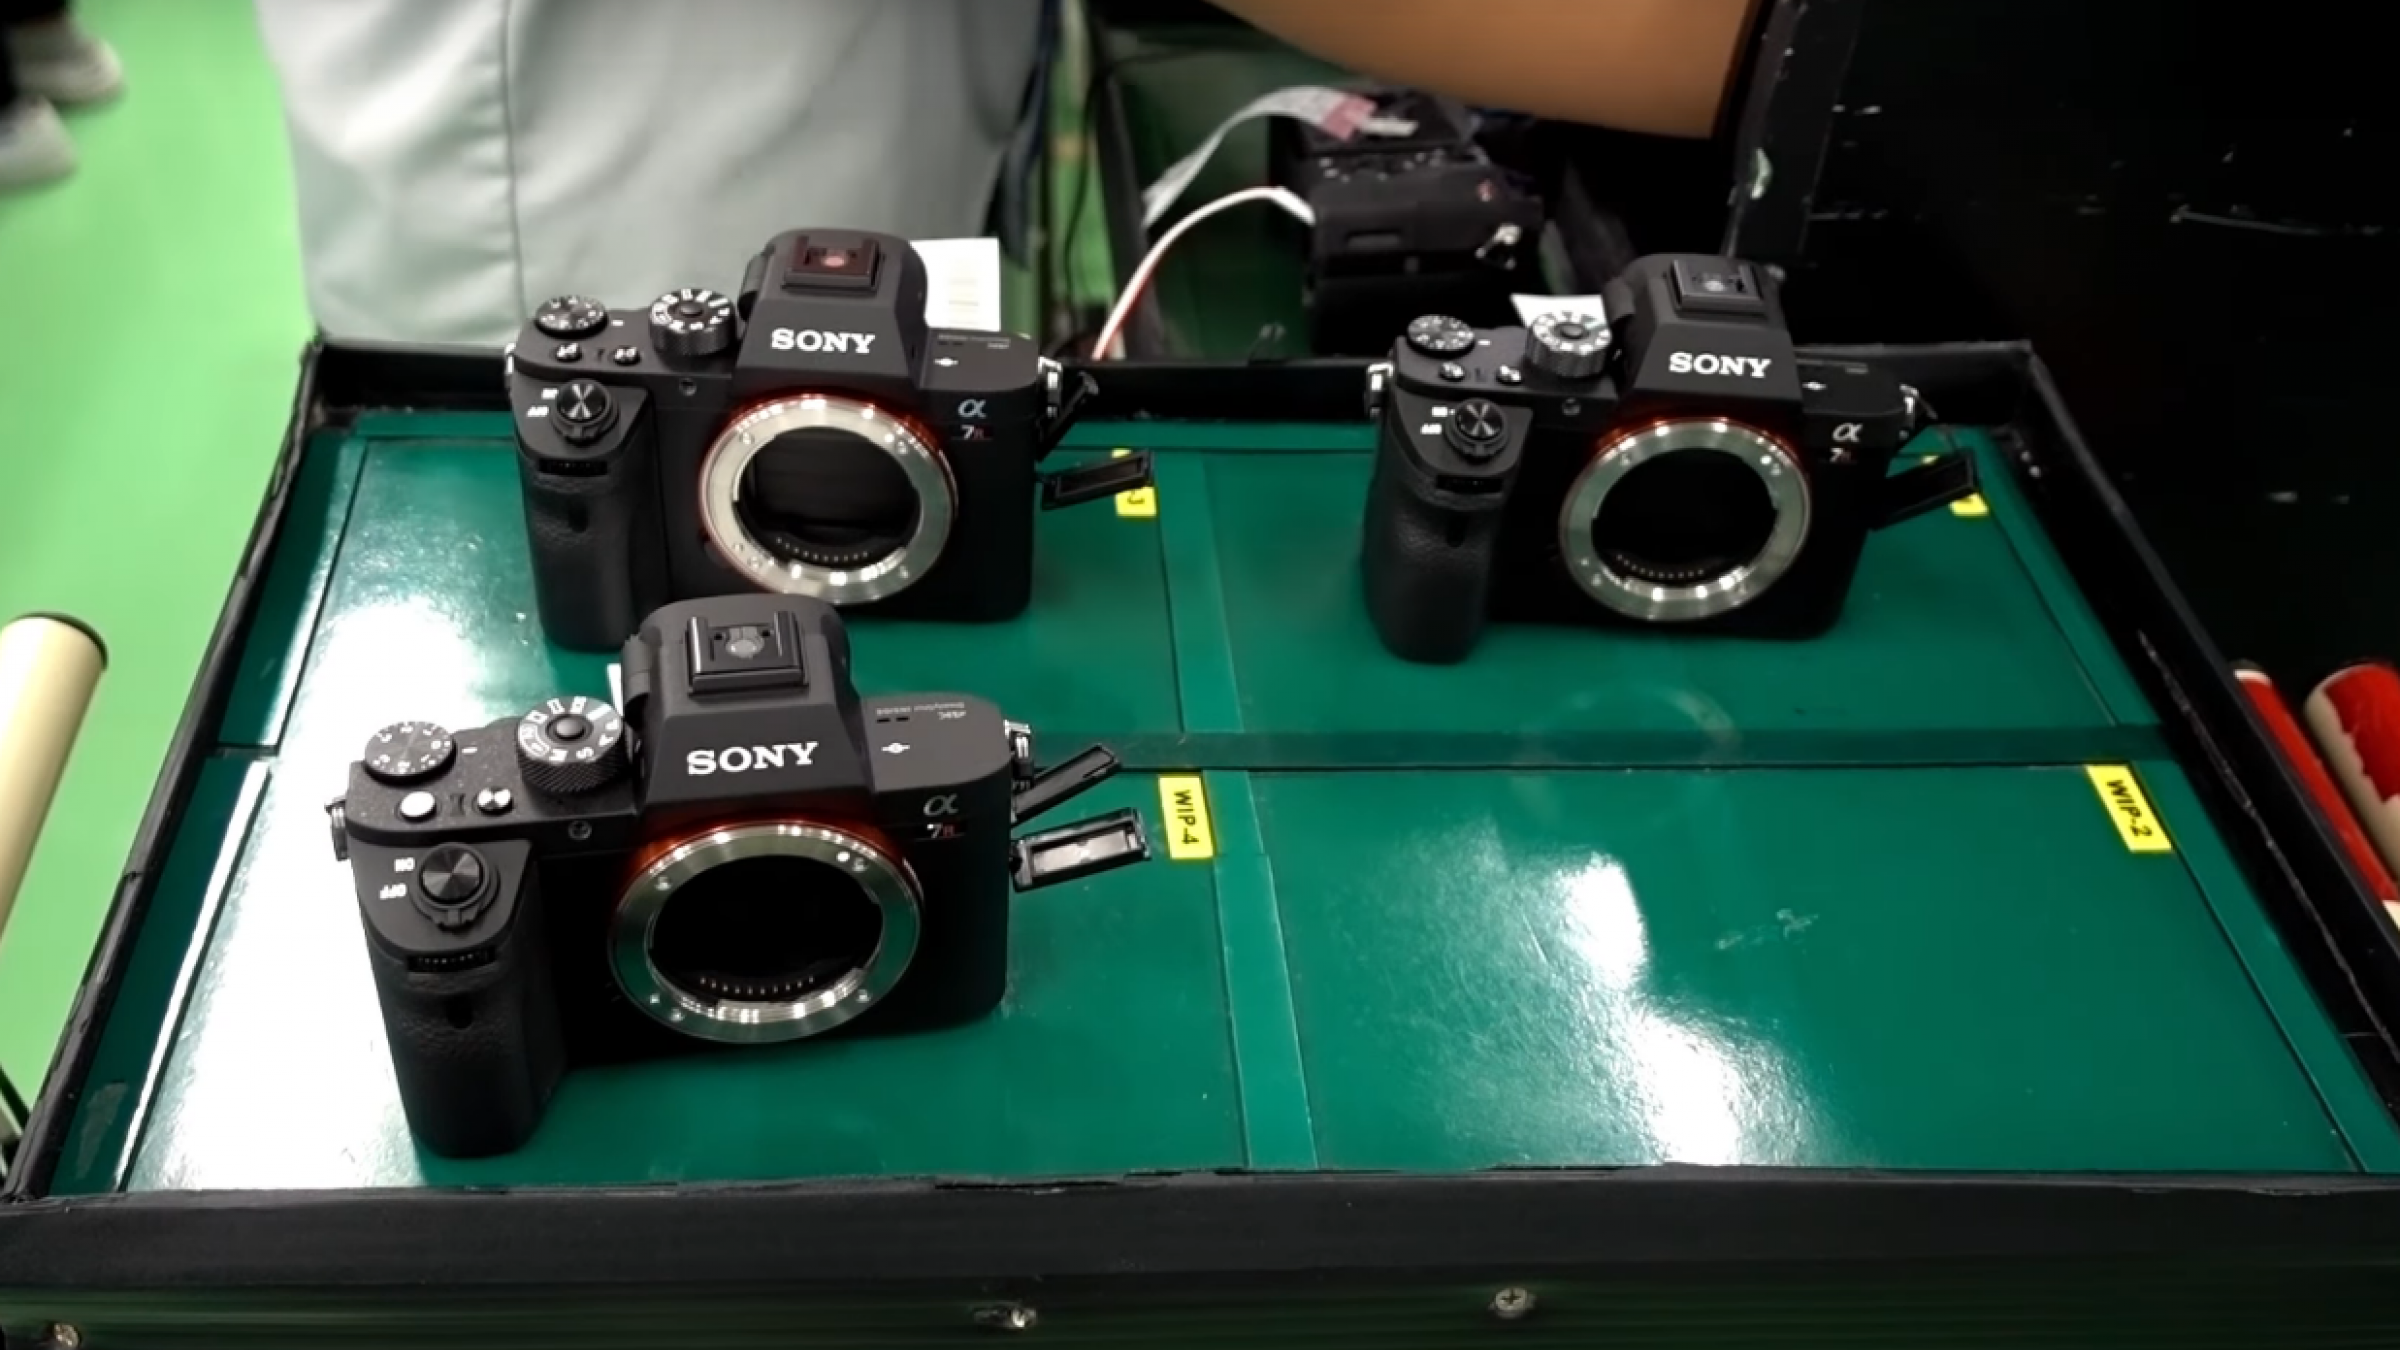 Watch: This Is How a Sony A7R II Mirrorless Camera Gets Built from Scratch